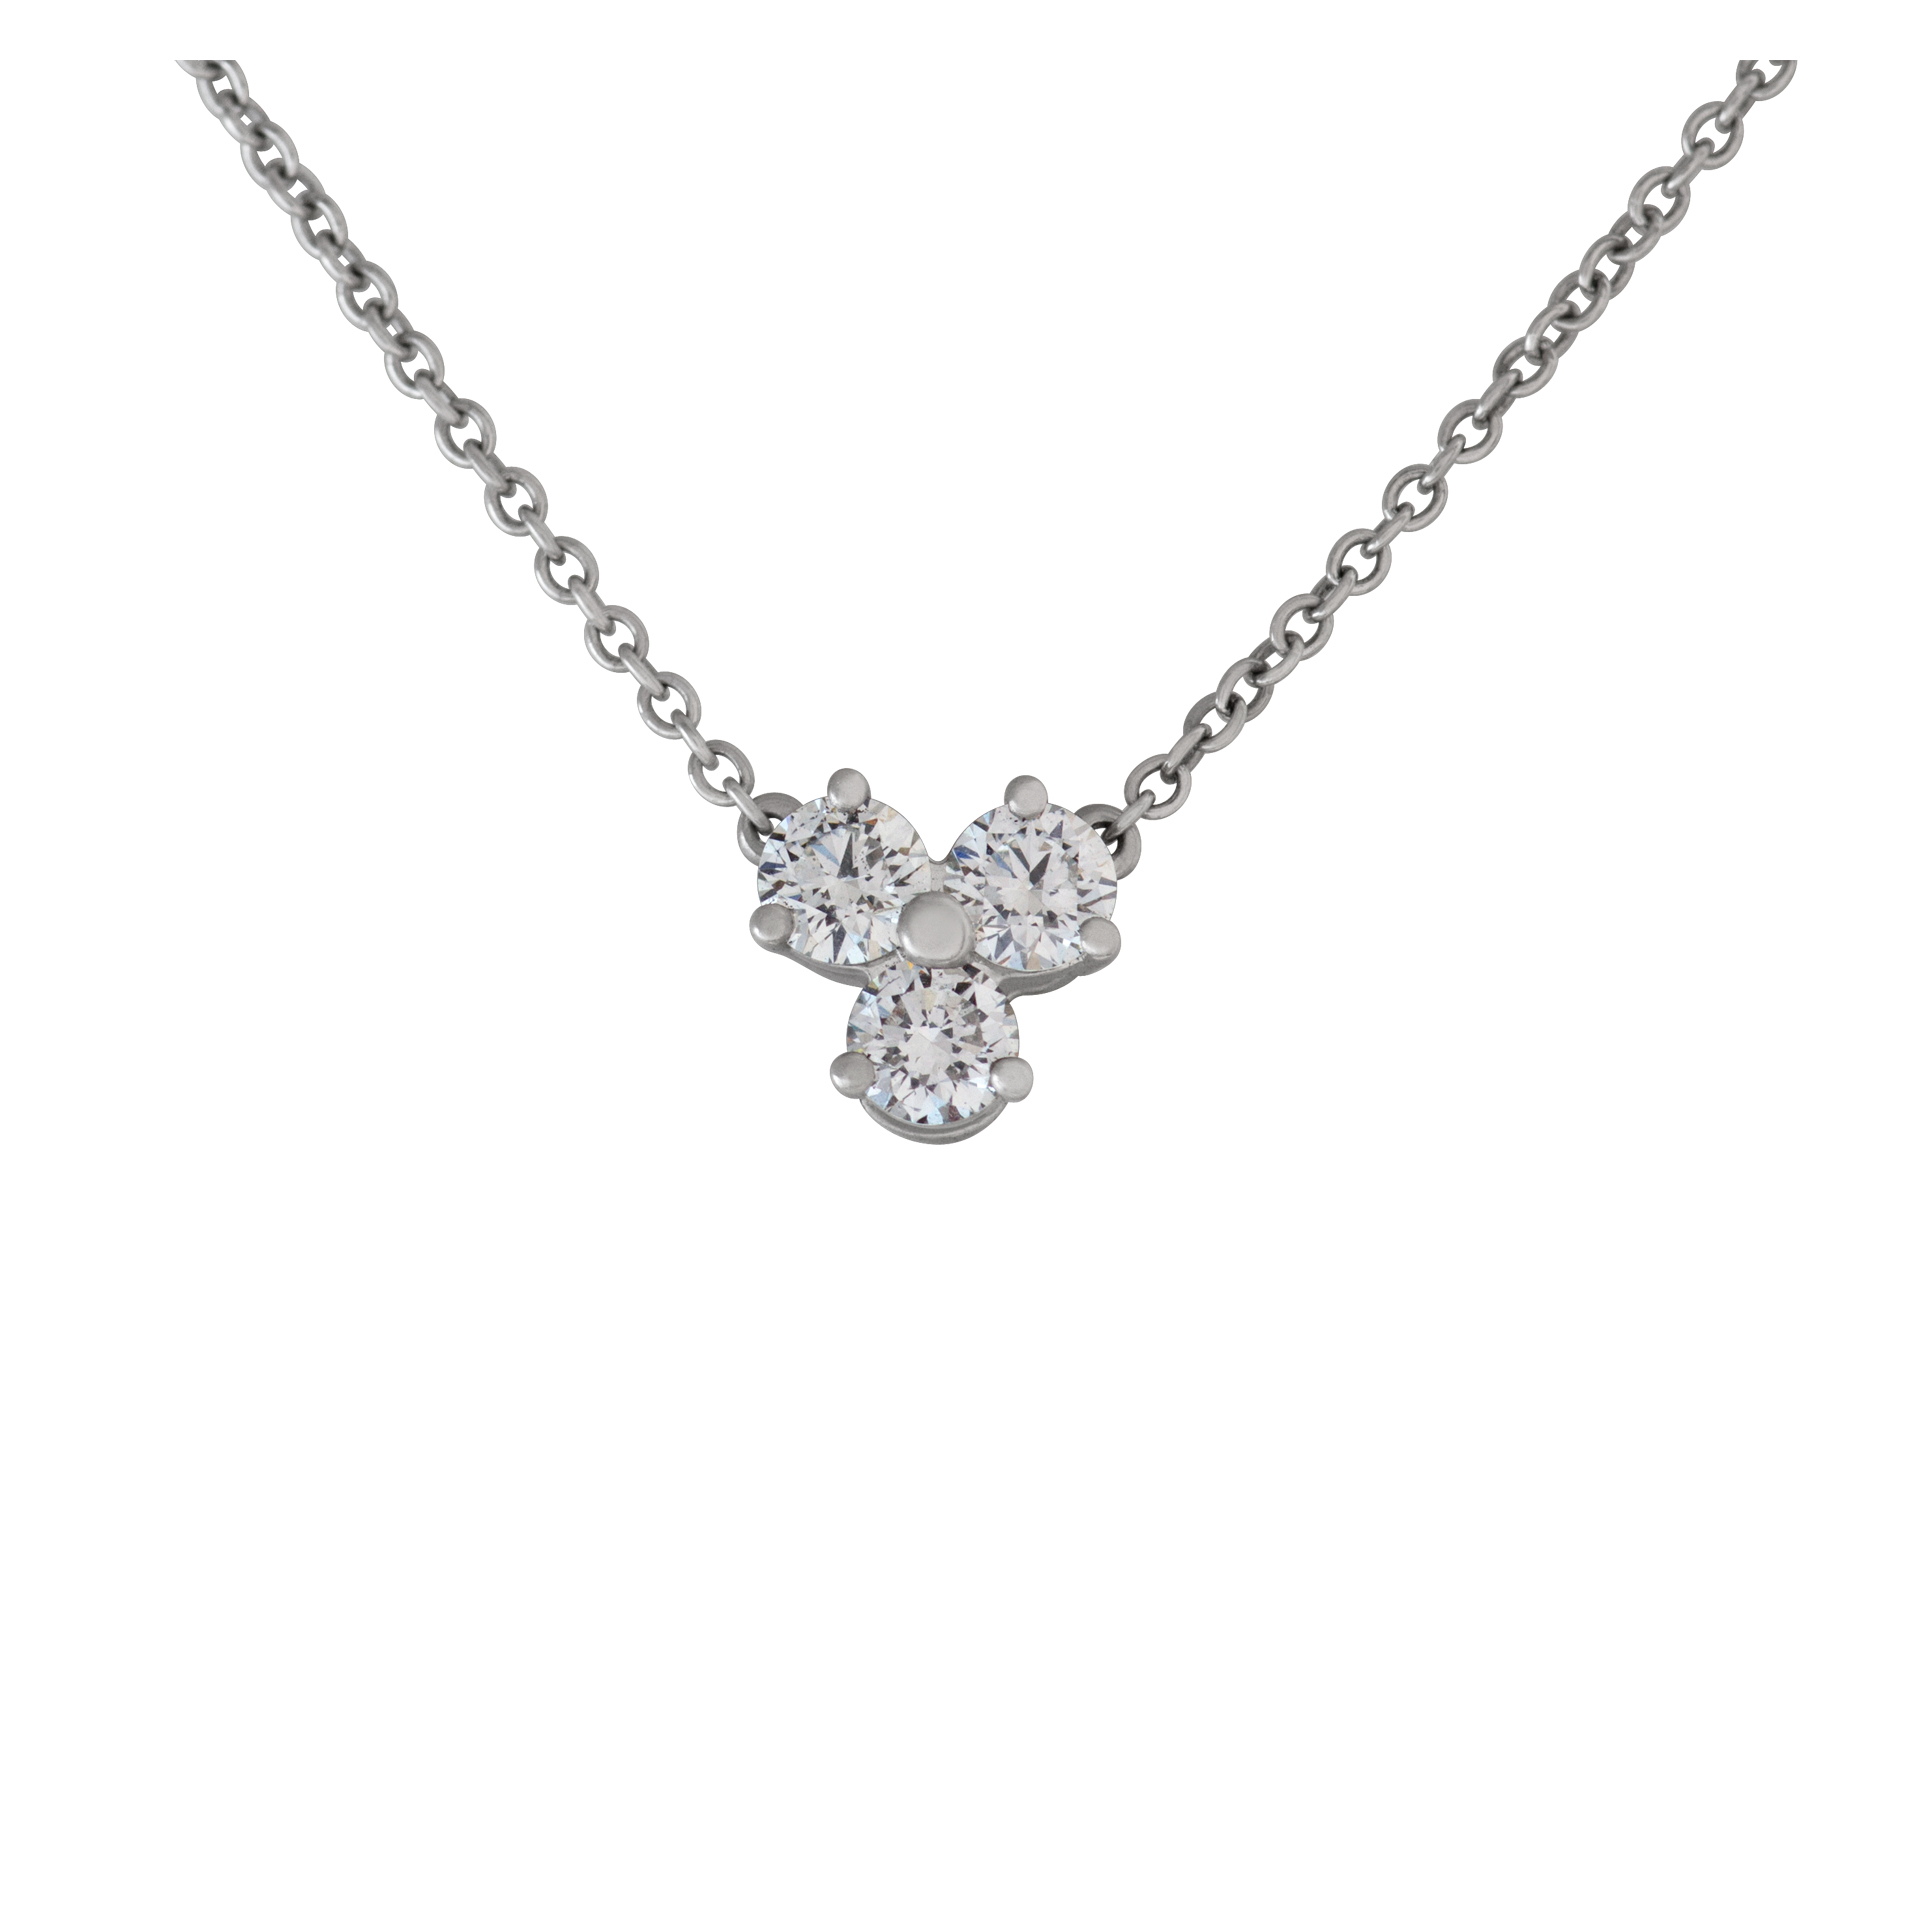 Tiffany & Co. Aria necklace in platinum with diamonds